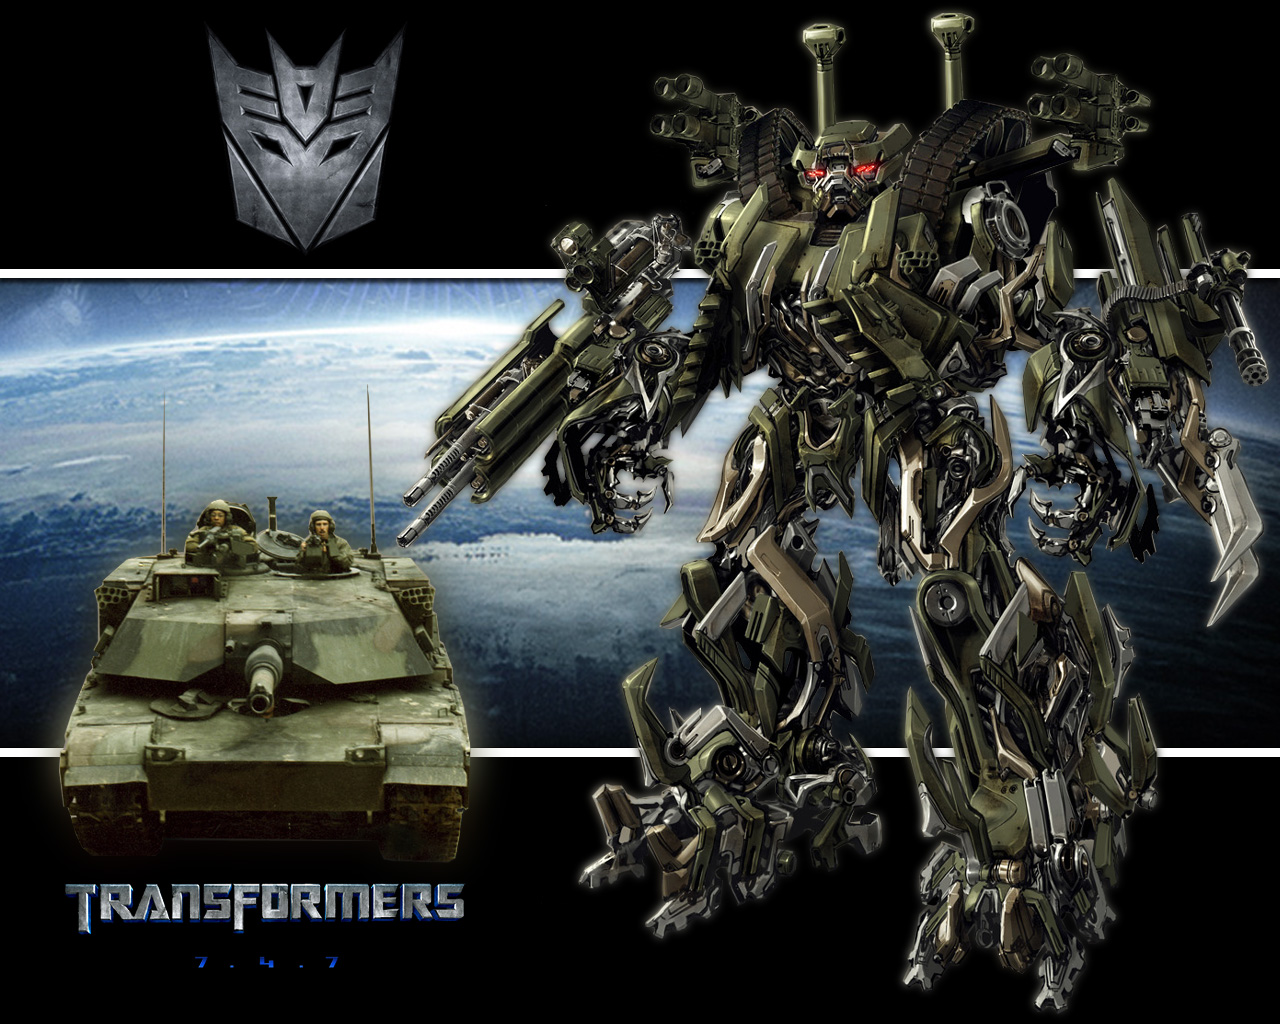 Blackout Transformers Wallpaper Blackout